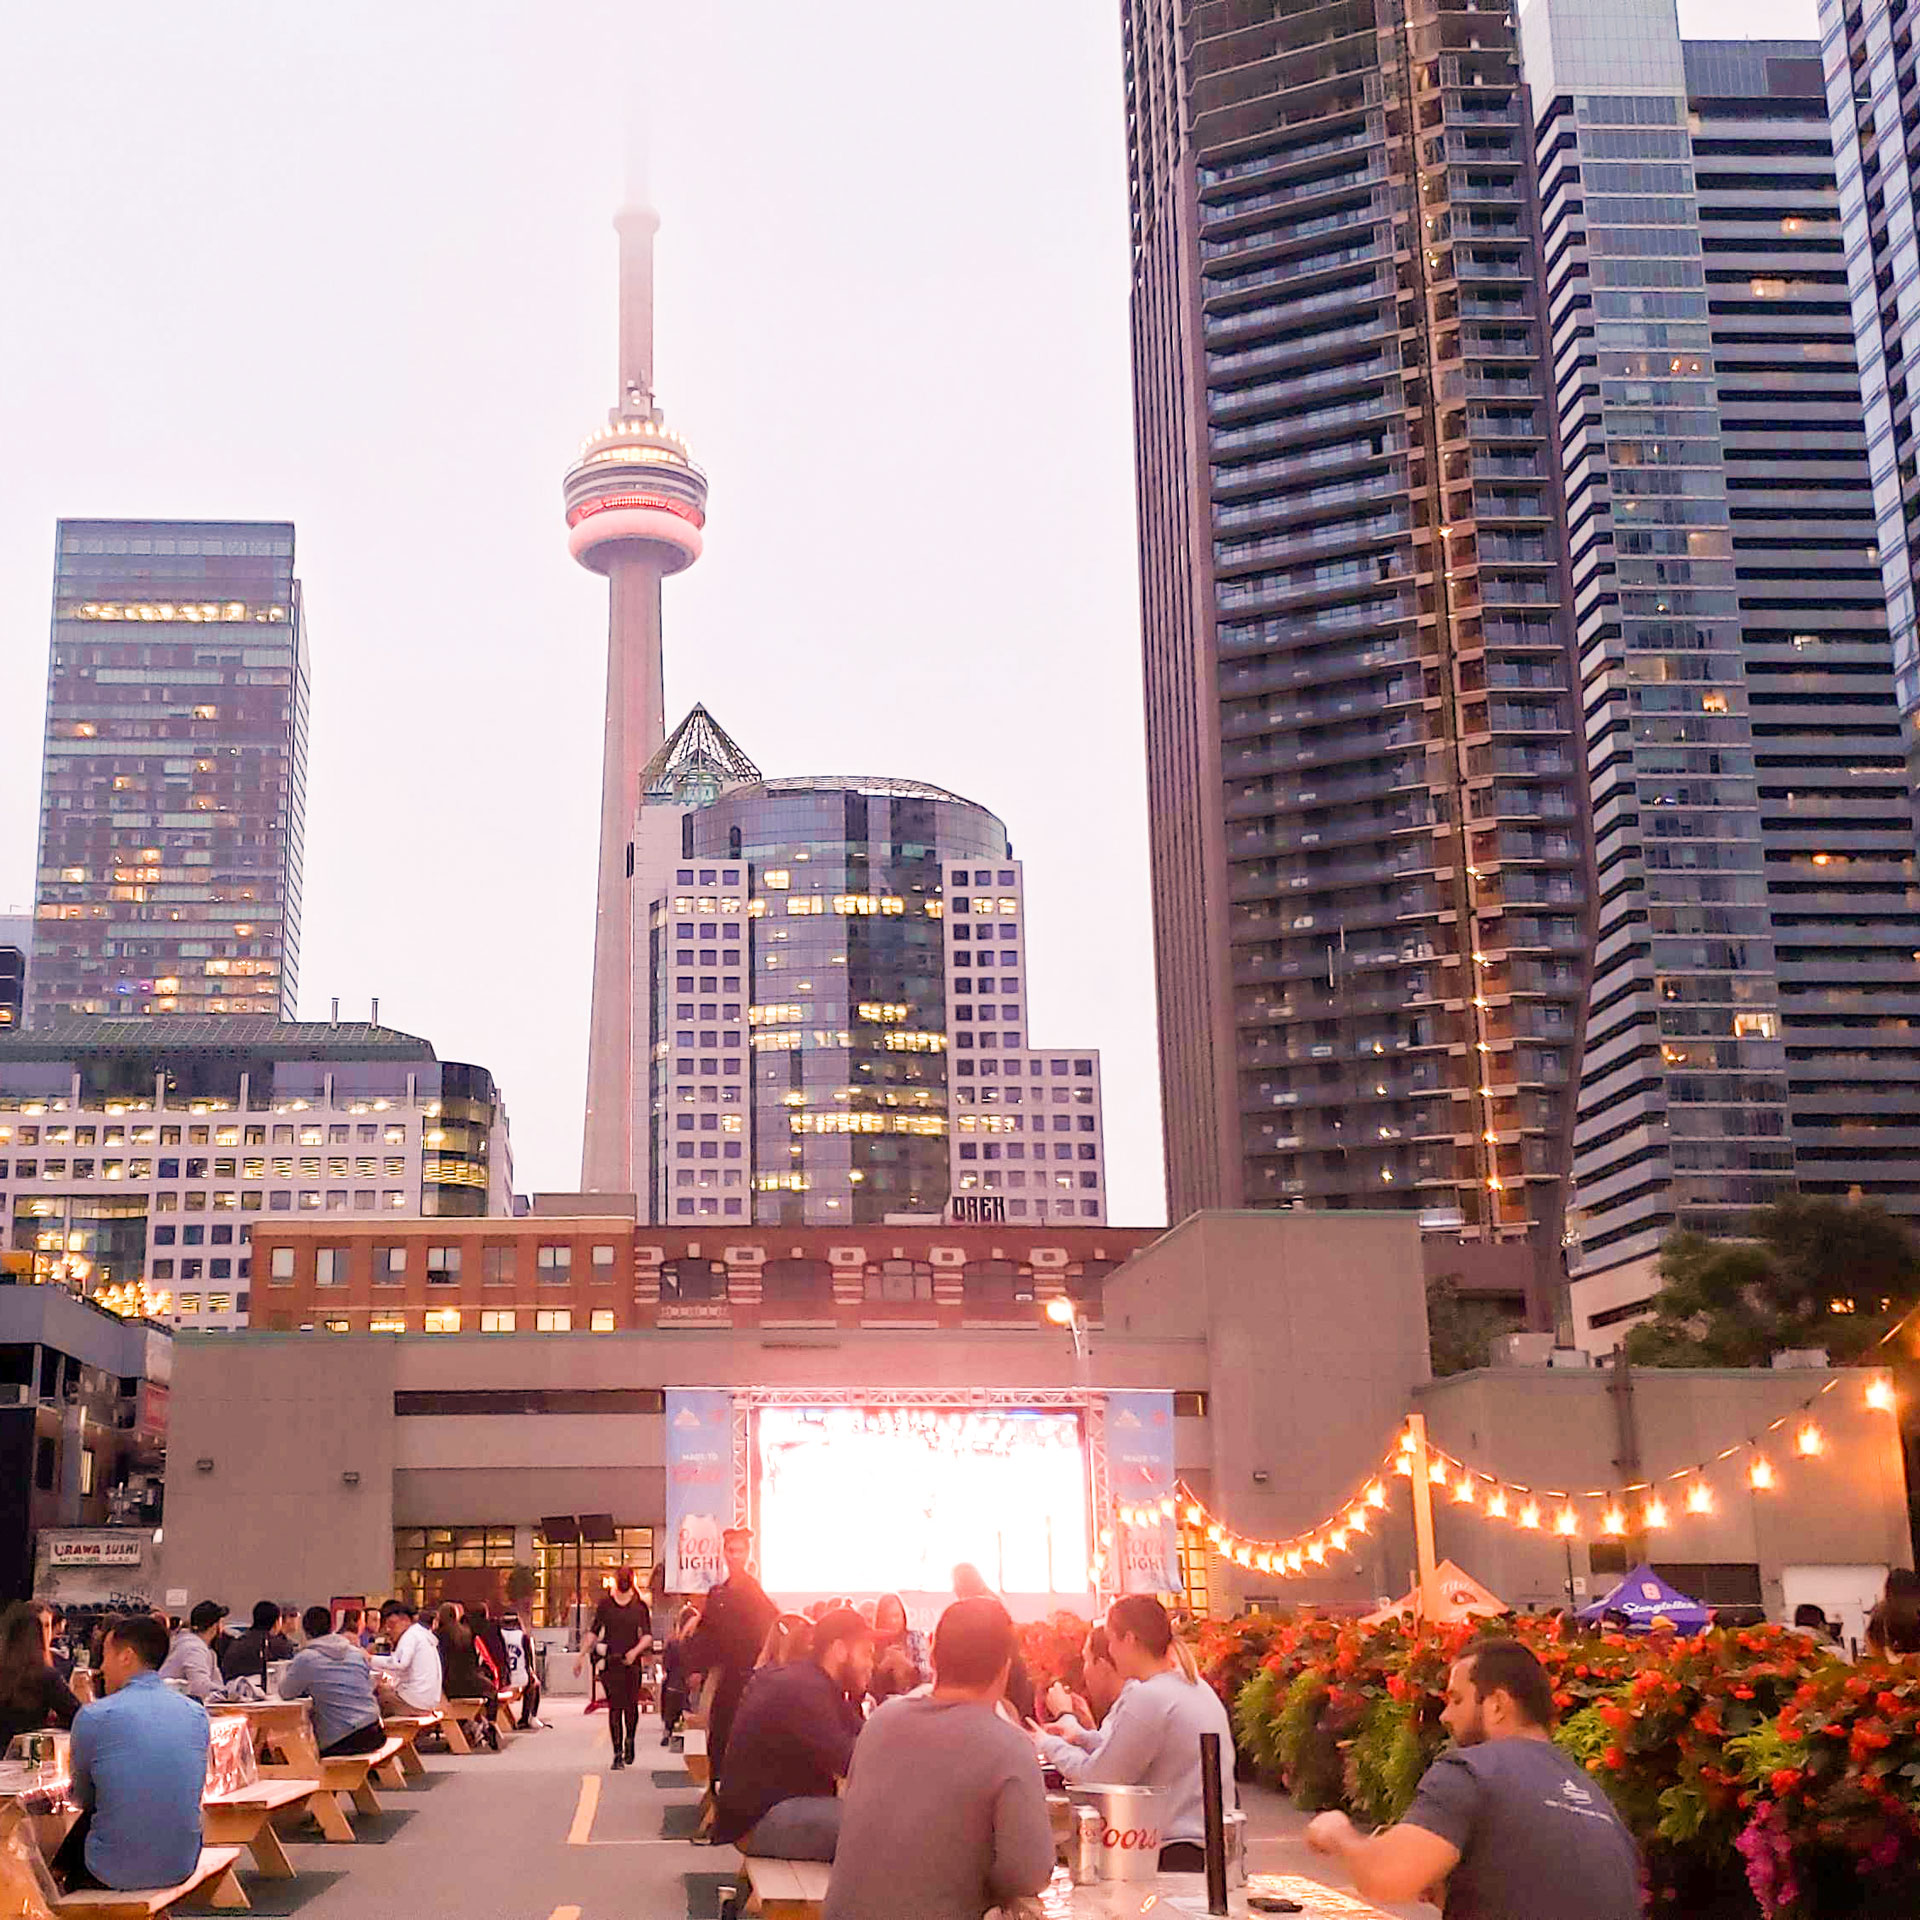 Rendezviews Outdoor Patio for Sports and Movie Screenings